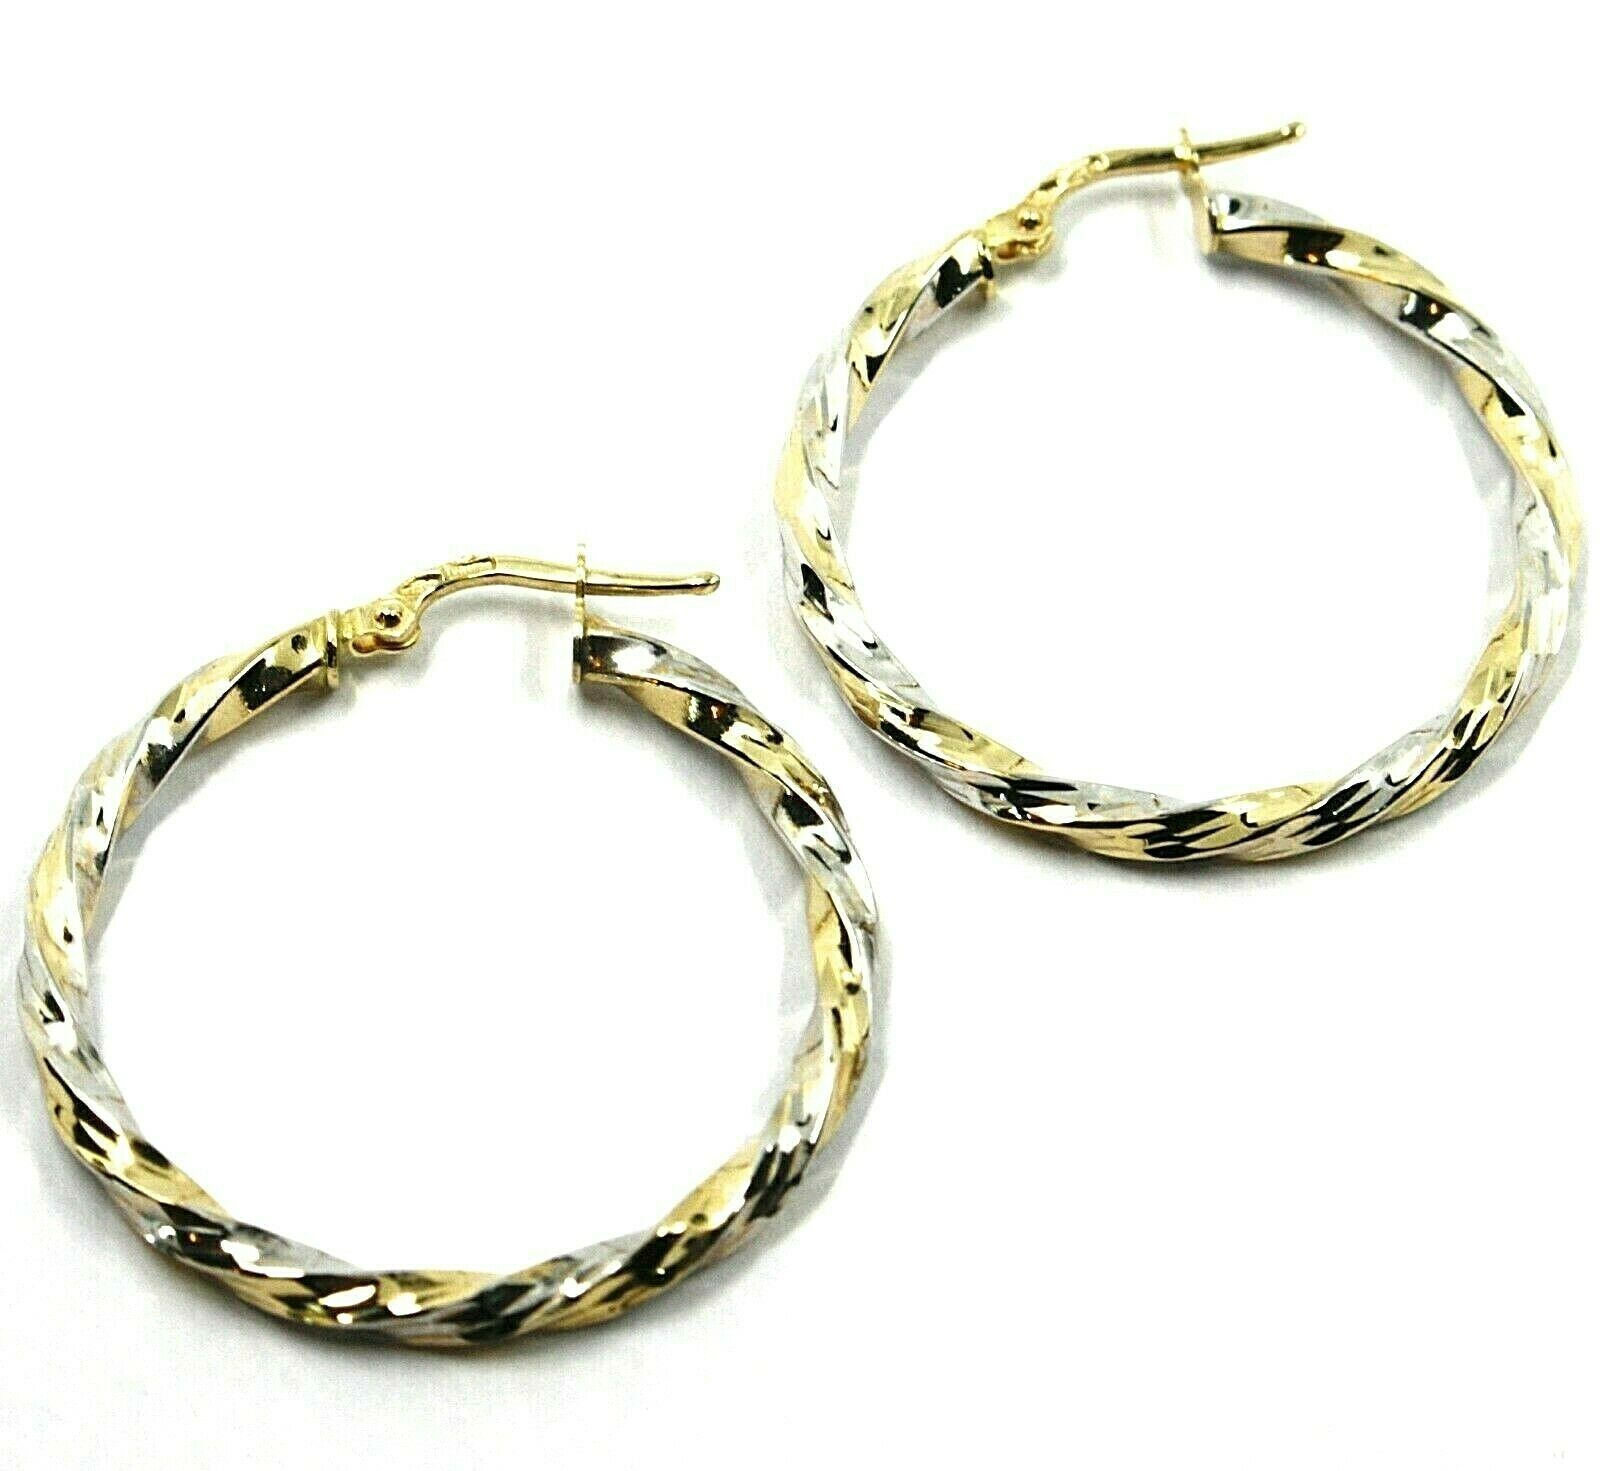 18K YELLOW WHITE GOLD CIRCLE HOOPS PENDANT EARRINGS, 3 cm x 3mm TWISTED, BRAIDED